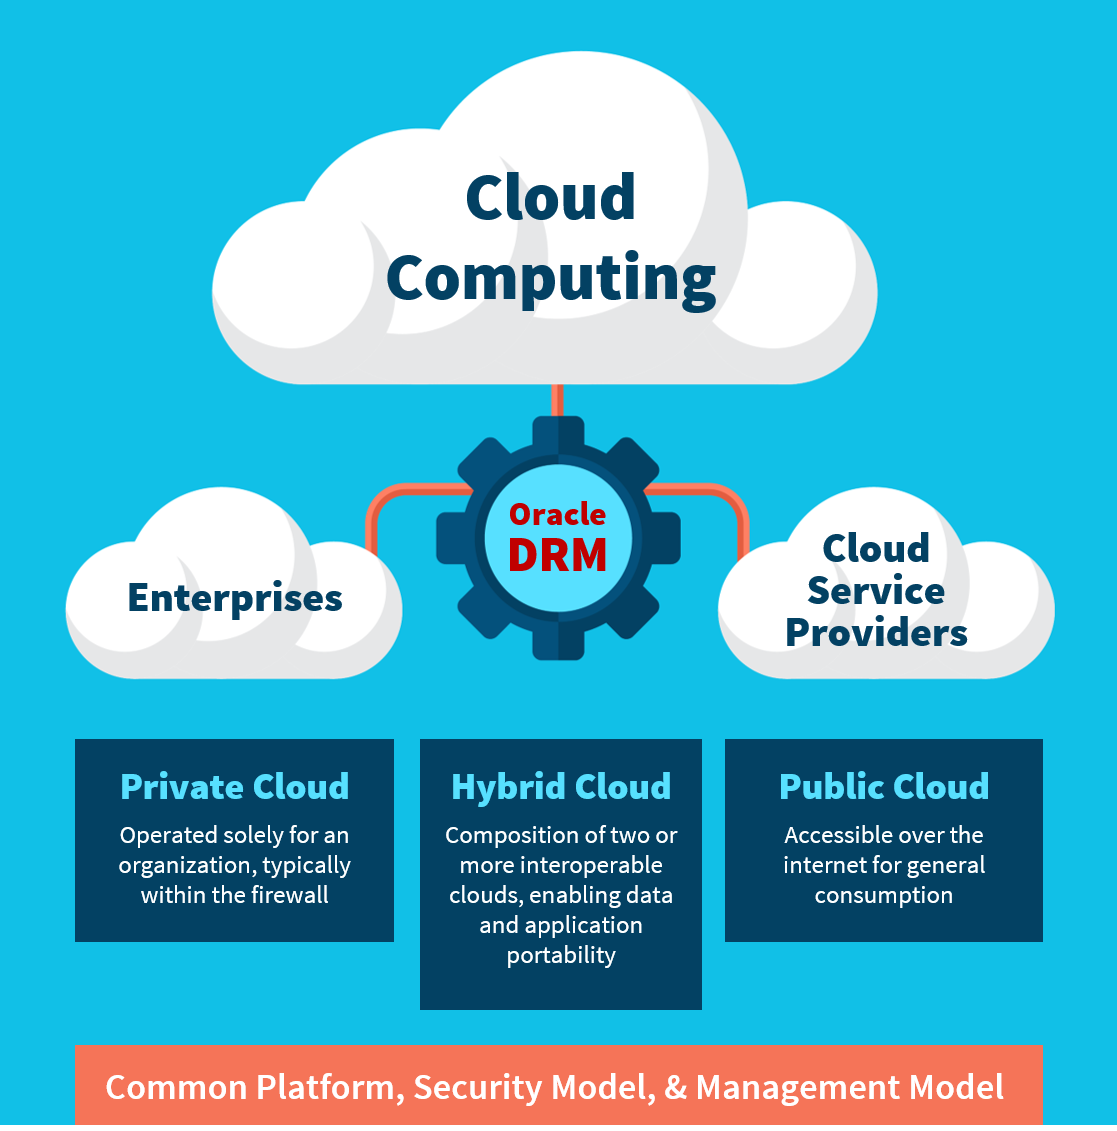 Cloud_Computing_Graphic-1.png